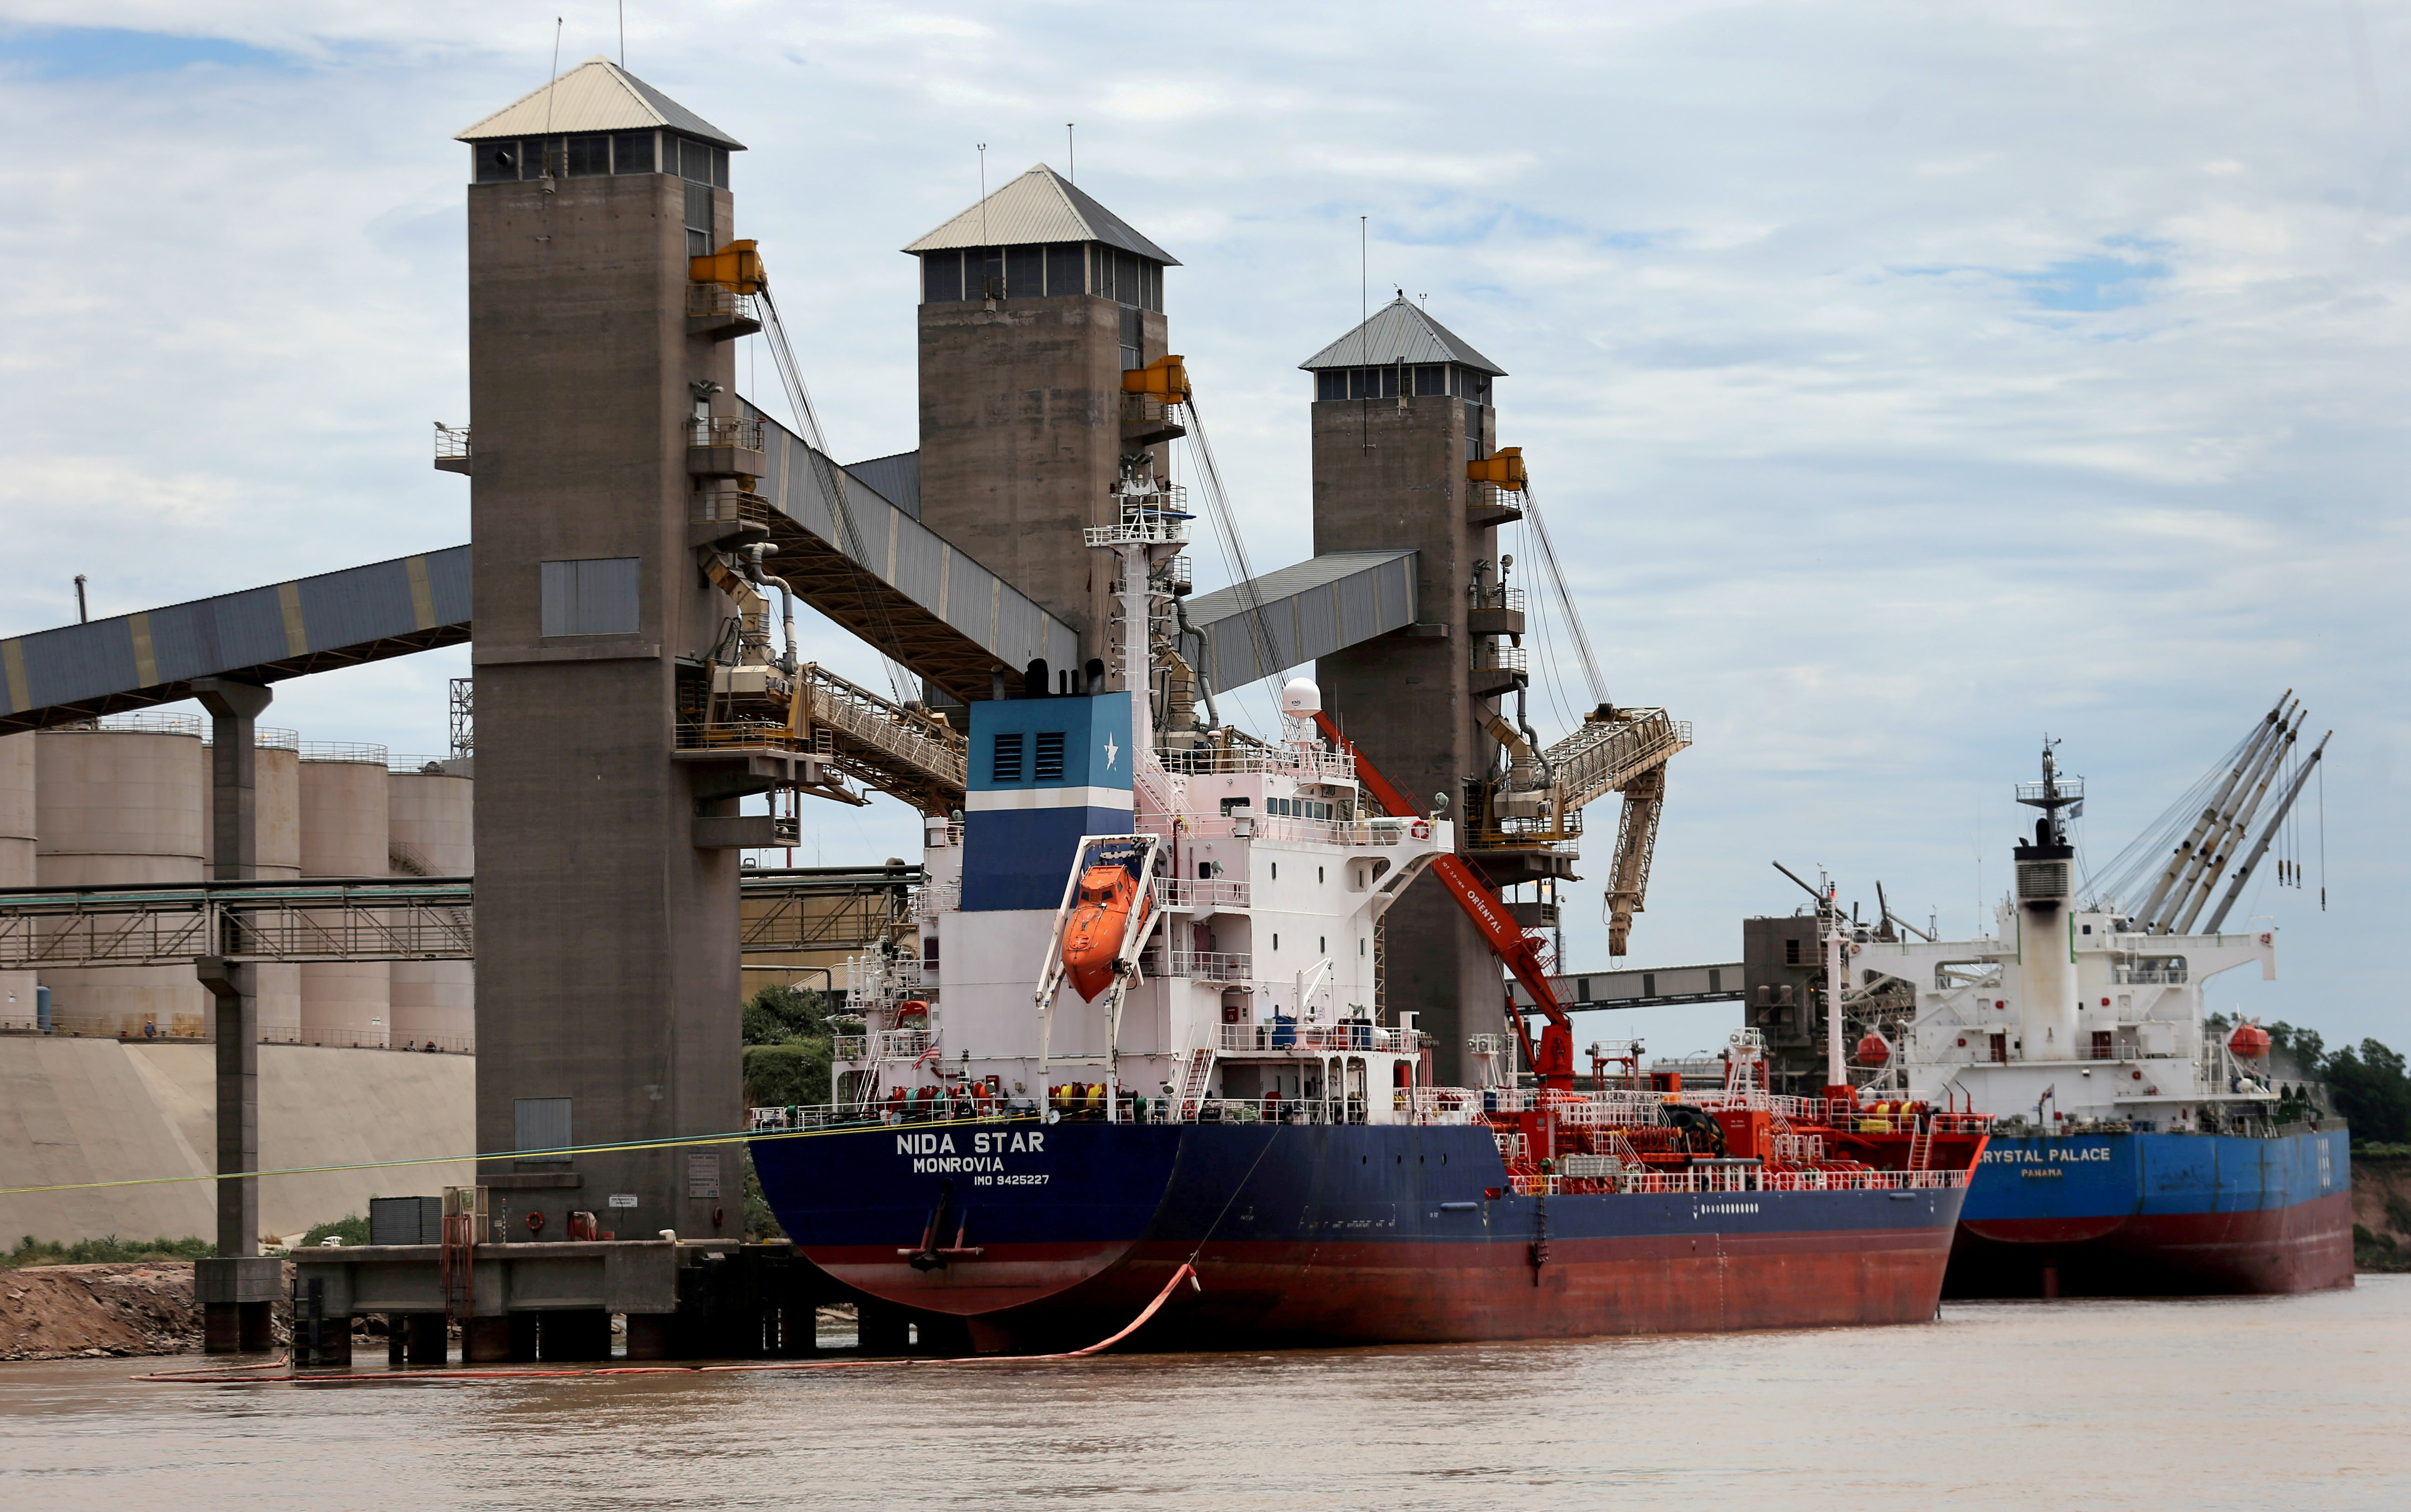 Grain is loaded onto ships for export at a port on the Parana river near Rosario, Argentina, January 31, 2017.  REUTERS/Marcos Brindicci/File Photo